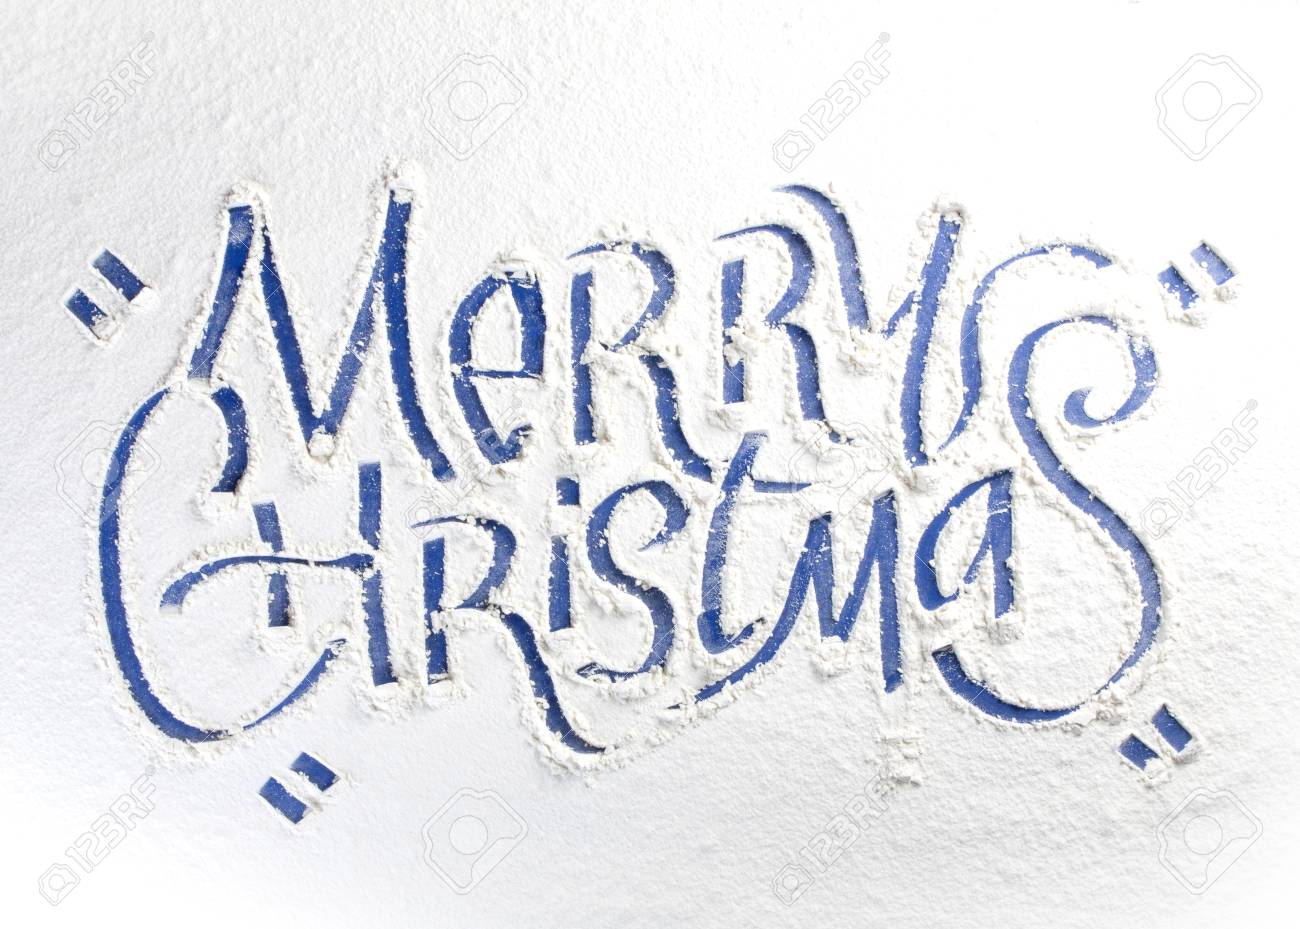 Written Words Merry Christmas On A Snow Stock Photo, Picture And ...